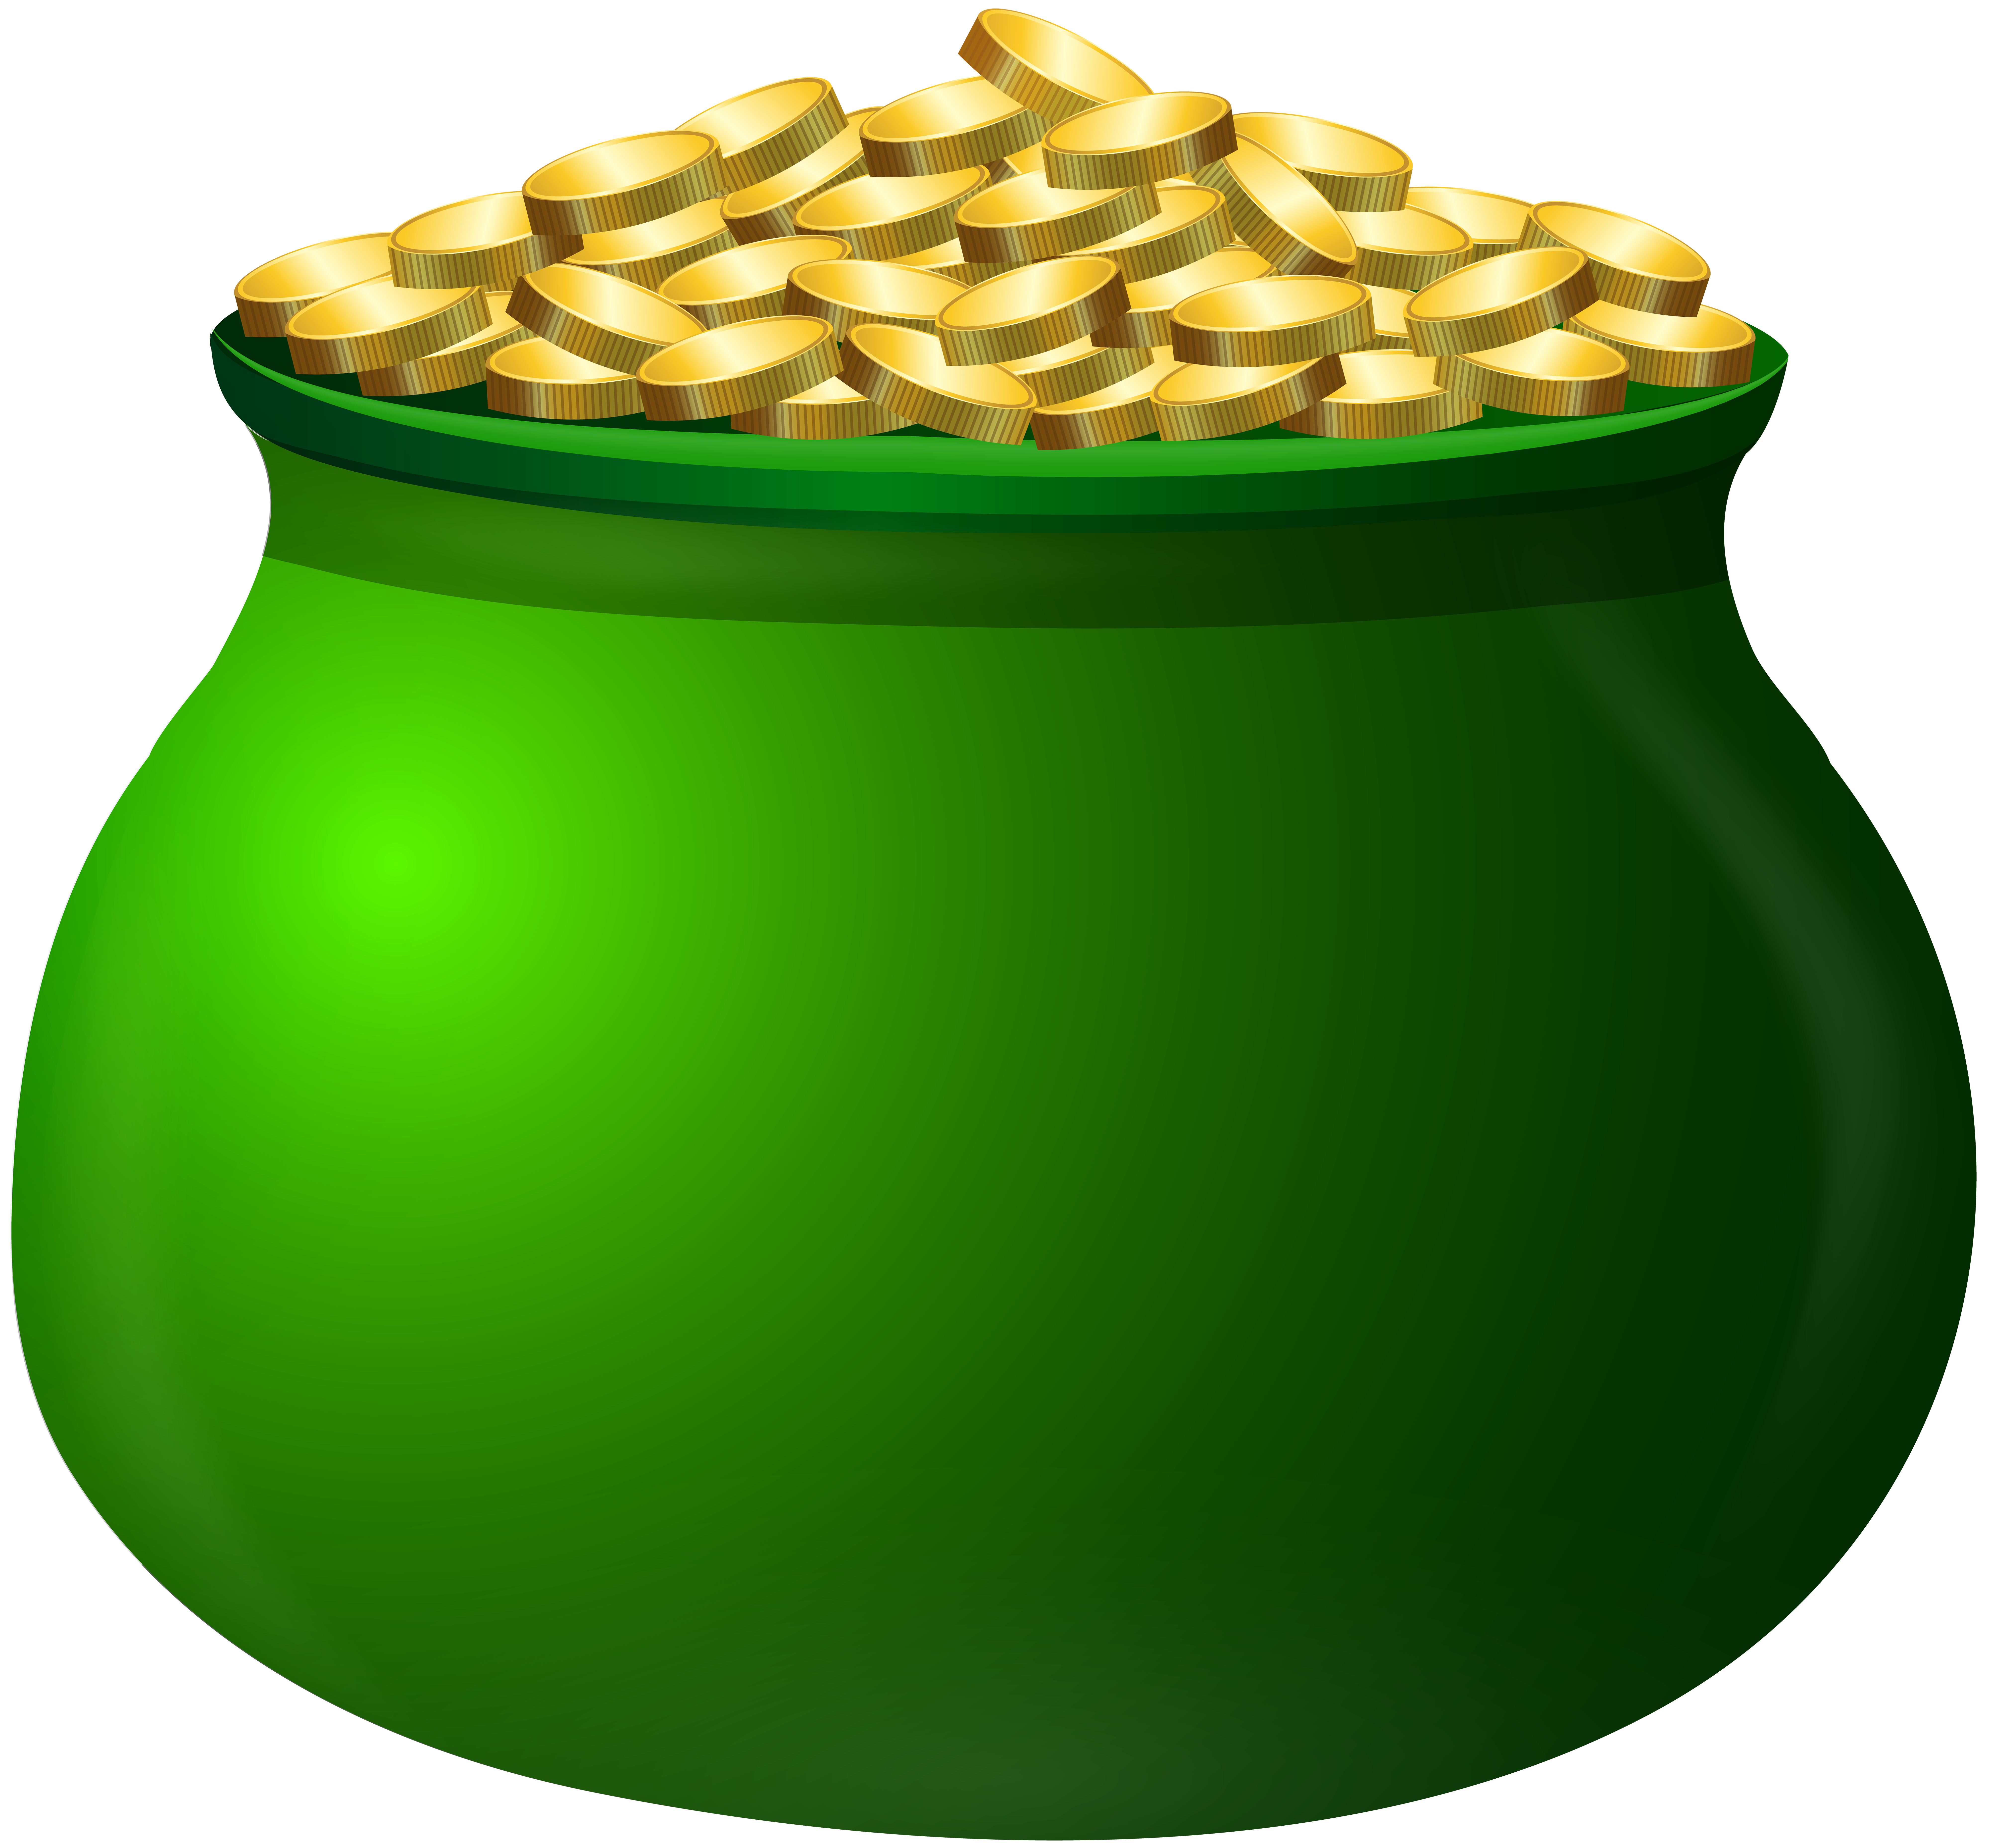 Money clipart without background clipart St Patrick's Day Pot of Gold Clip Art Image | Gallery Yopriceville ... clipart